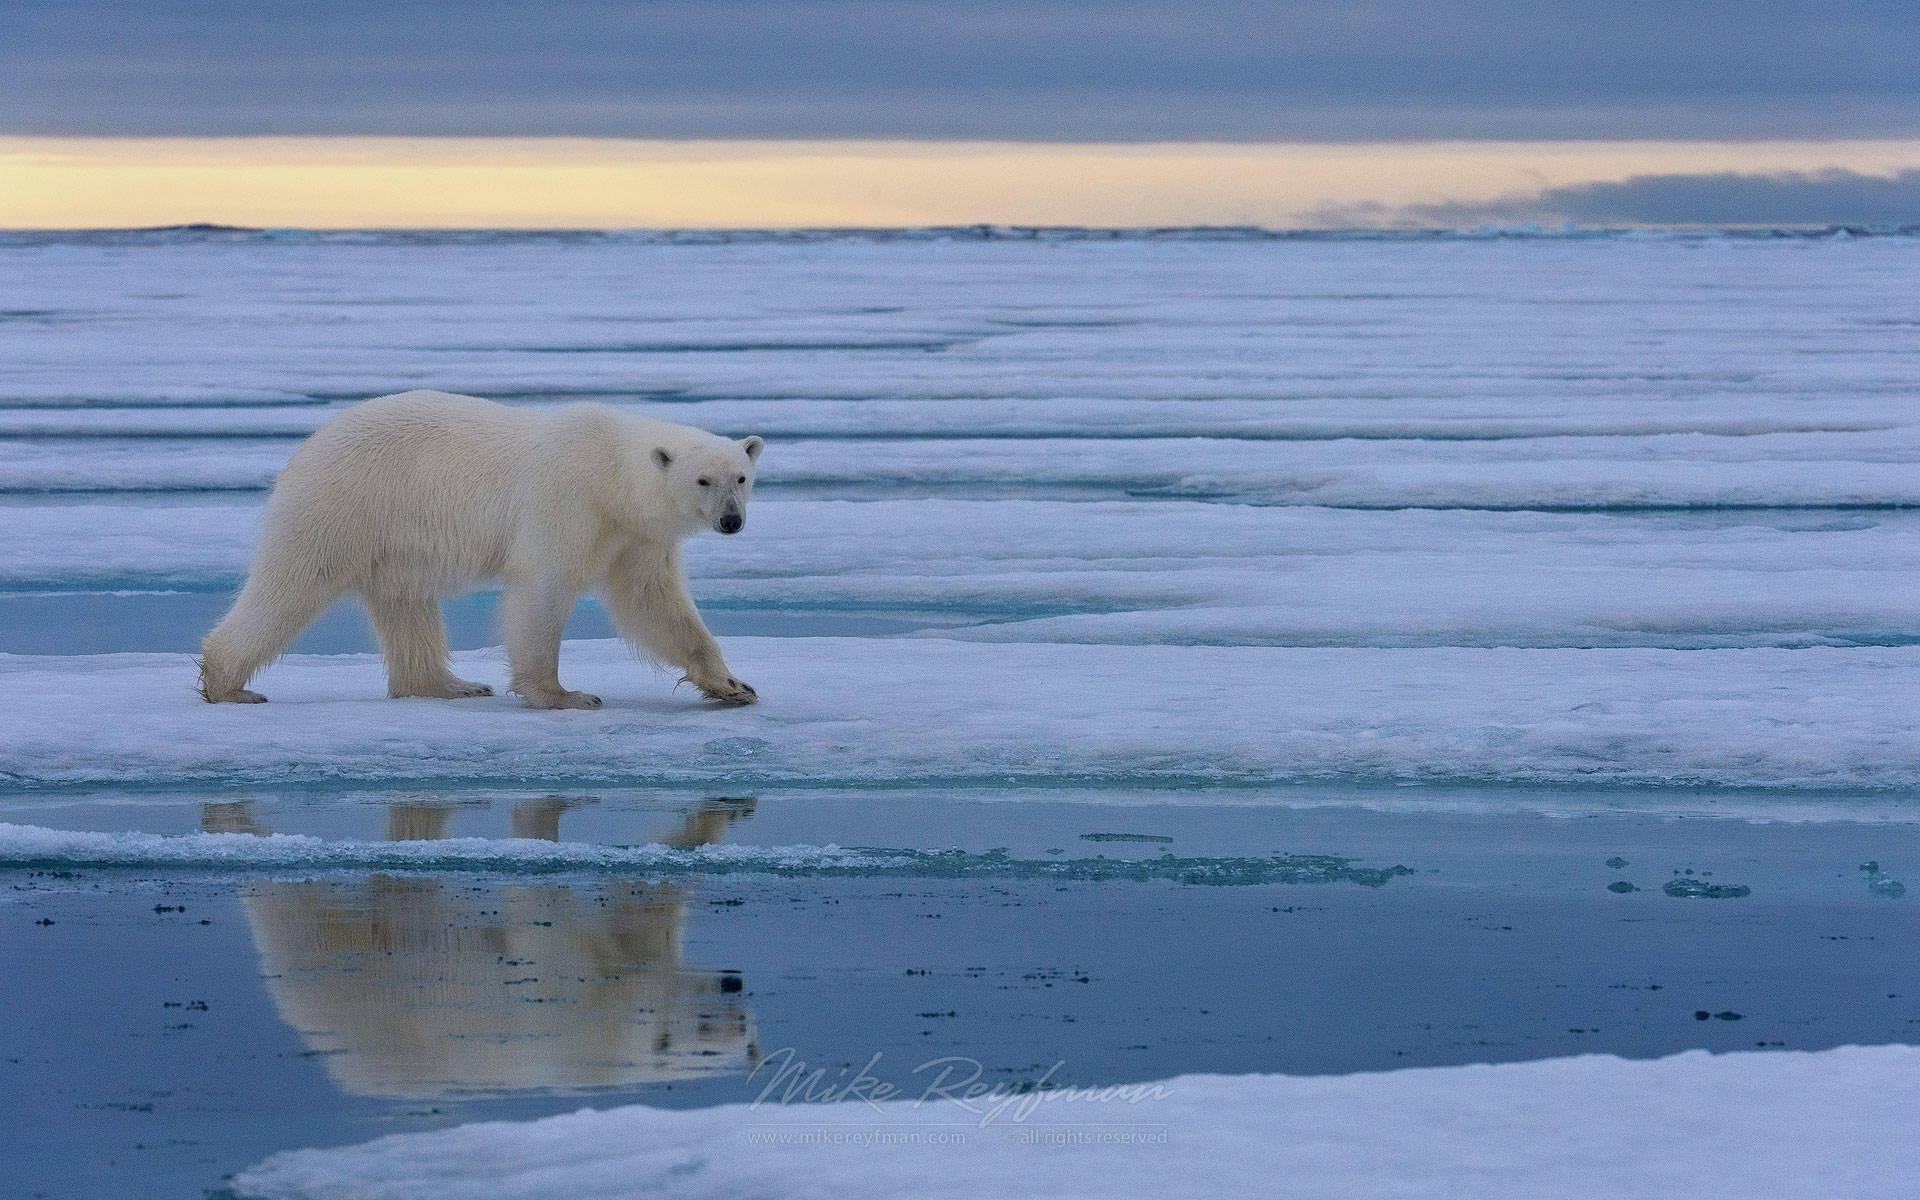 Polar Bear walking on ice floe at sunset. Spitsbergen, Svalbard, Norway. - Polar-Bears-Svalbard-Spitsbergen-Norway - Mike Reyfman Photography